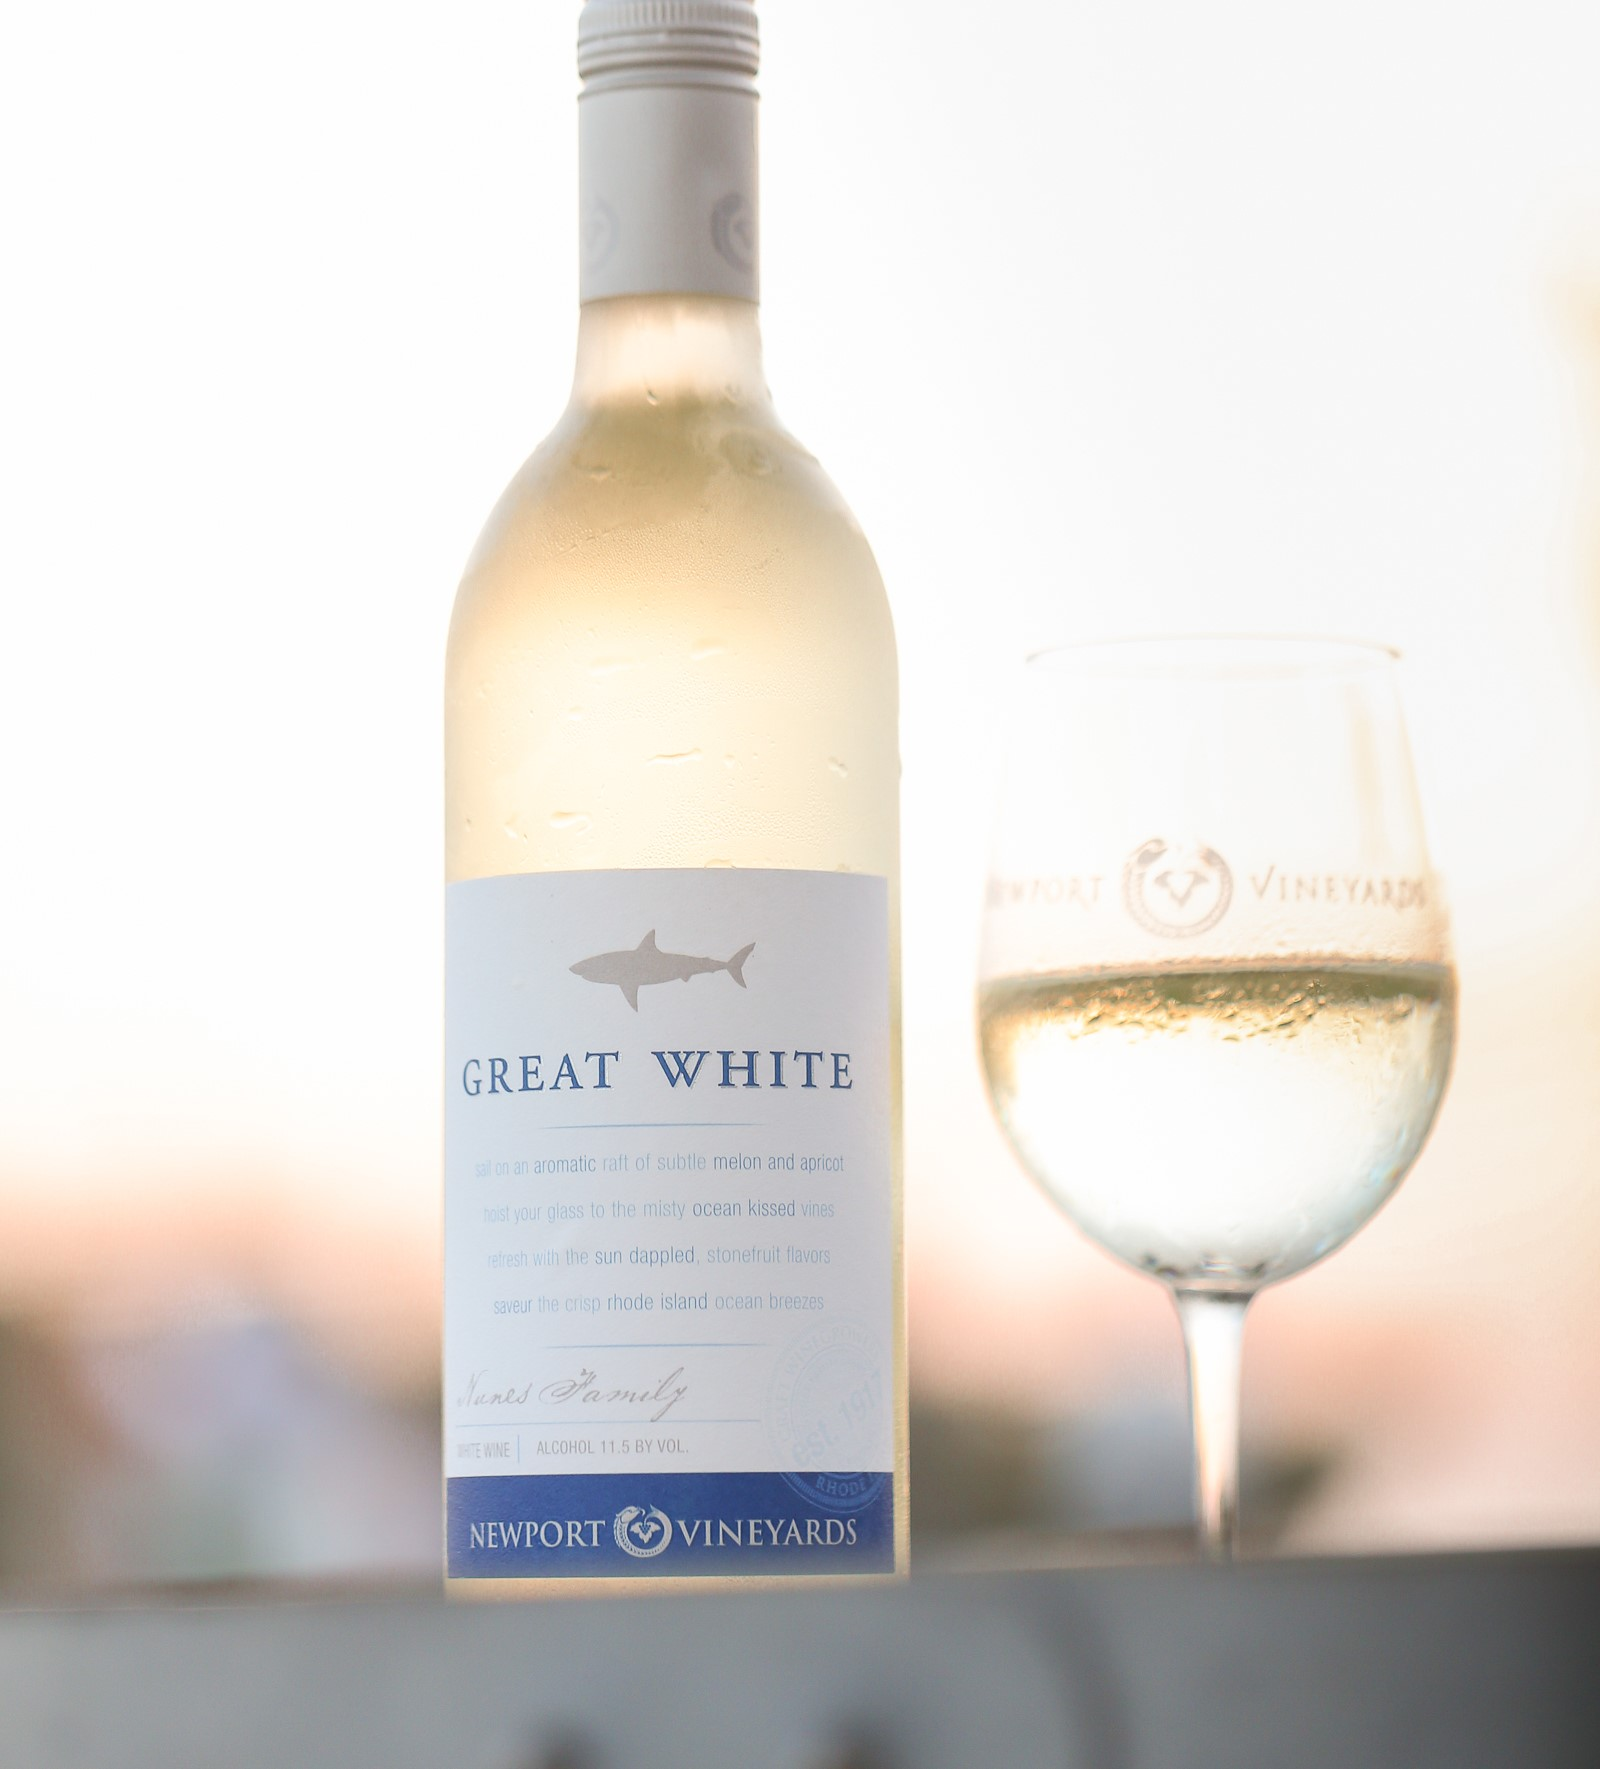 Newport Vineyards Great White Marks Twentieth Anniversary